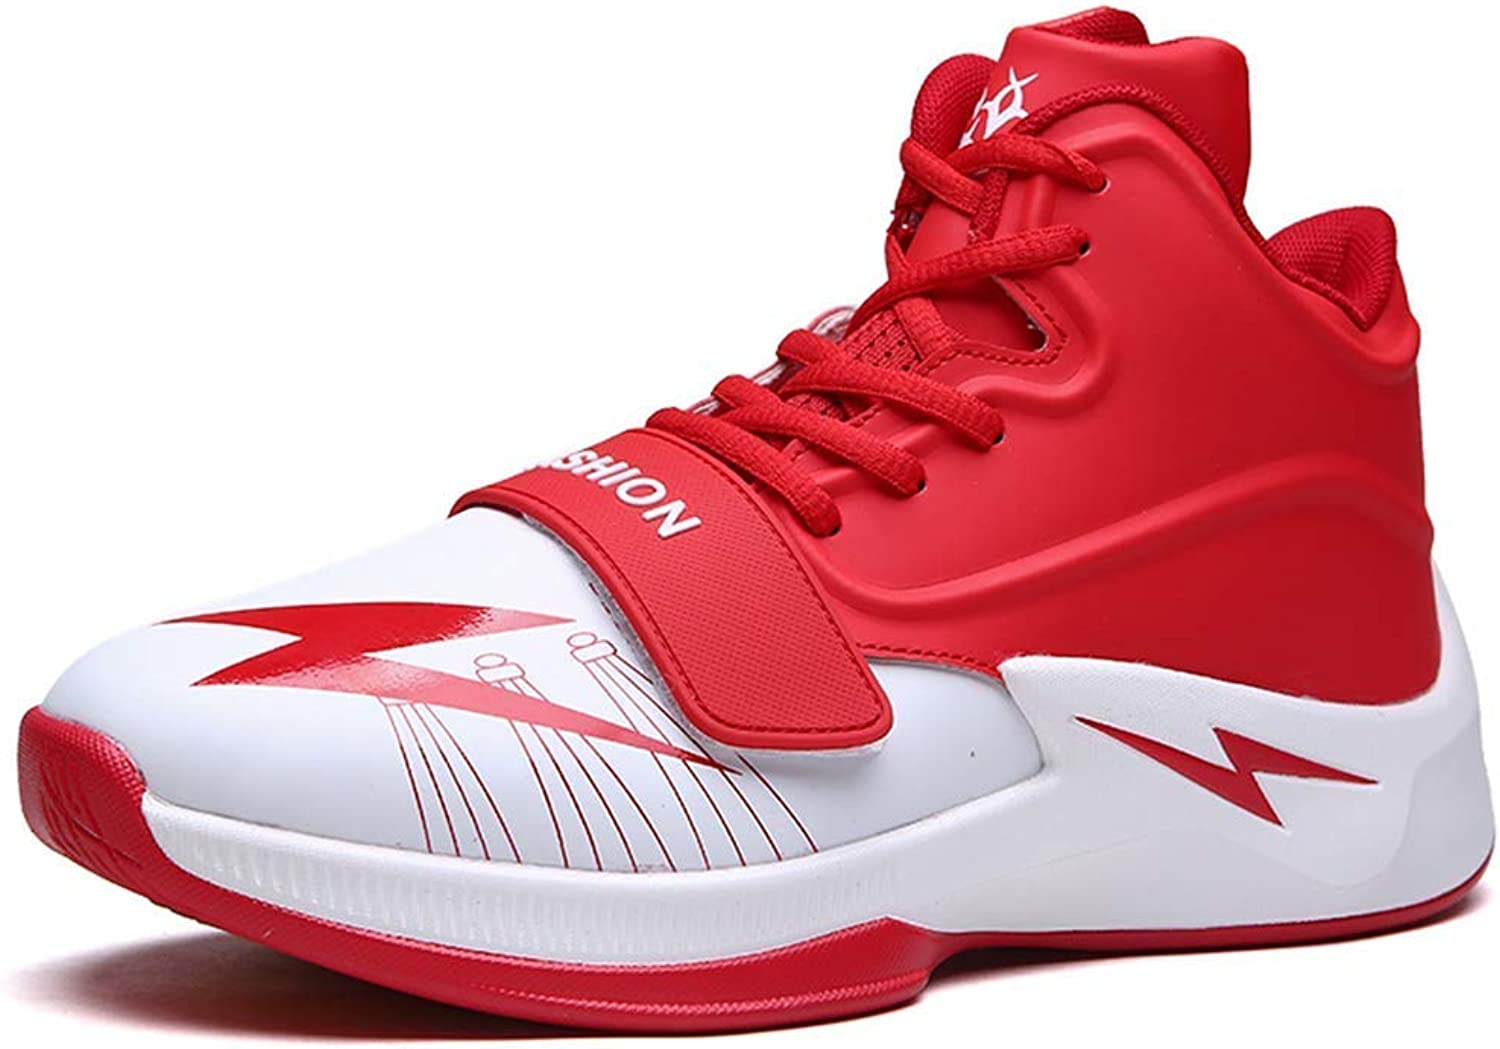 ZHRUI Men Basketball shoes Breathable Outdoor Sneakers Athletic Training Non-Slip Ankle Sport Boots (color   Red, Size   10=45 EU)